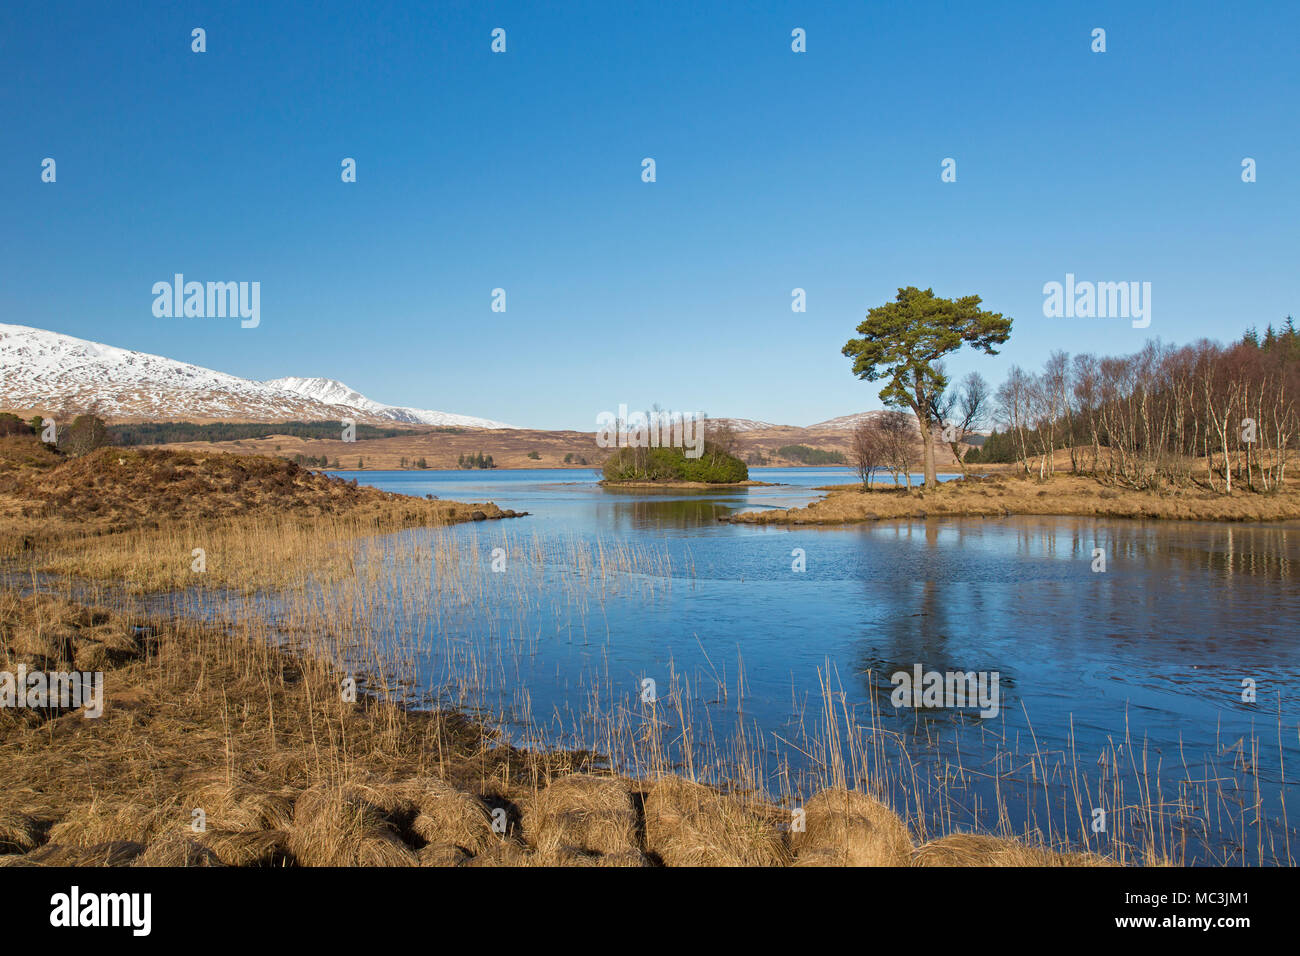 Scots pine (Pinus sylvestris) along Loch Tulla in the Scottish Highlands in winter, Argyll and Bute, Scotland, UK - Stock Image